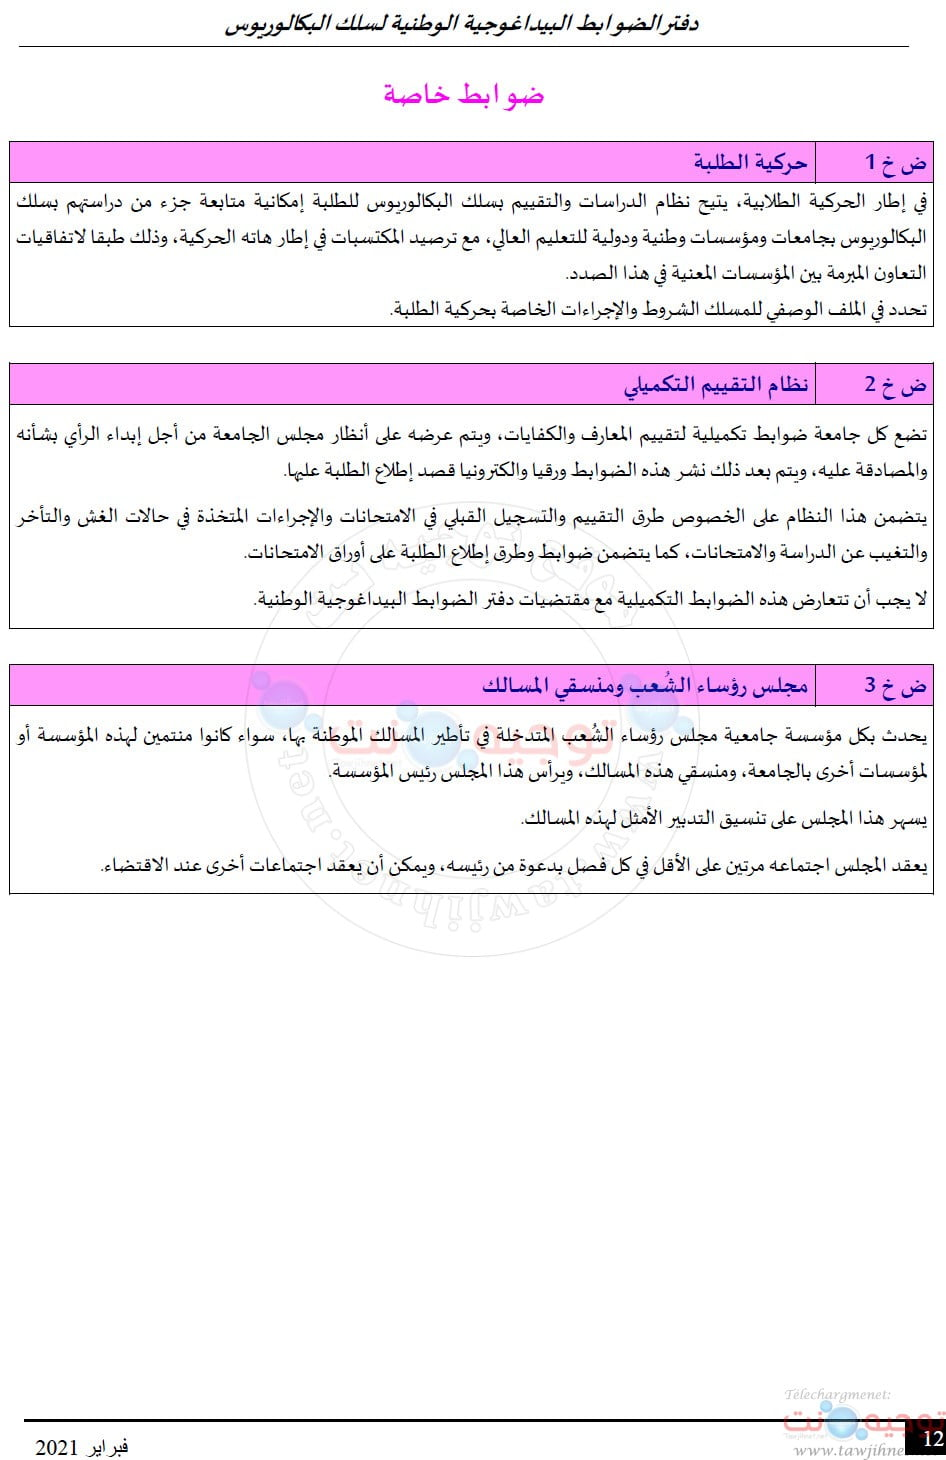 Bachelor-CNPN-normes-pedagoqiques-2021_Page_12-morocco.jpg